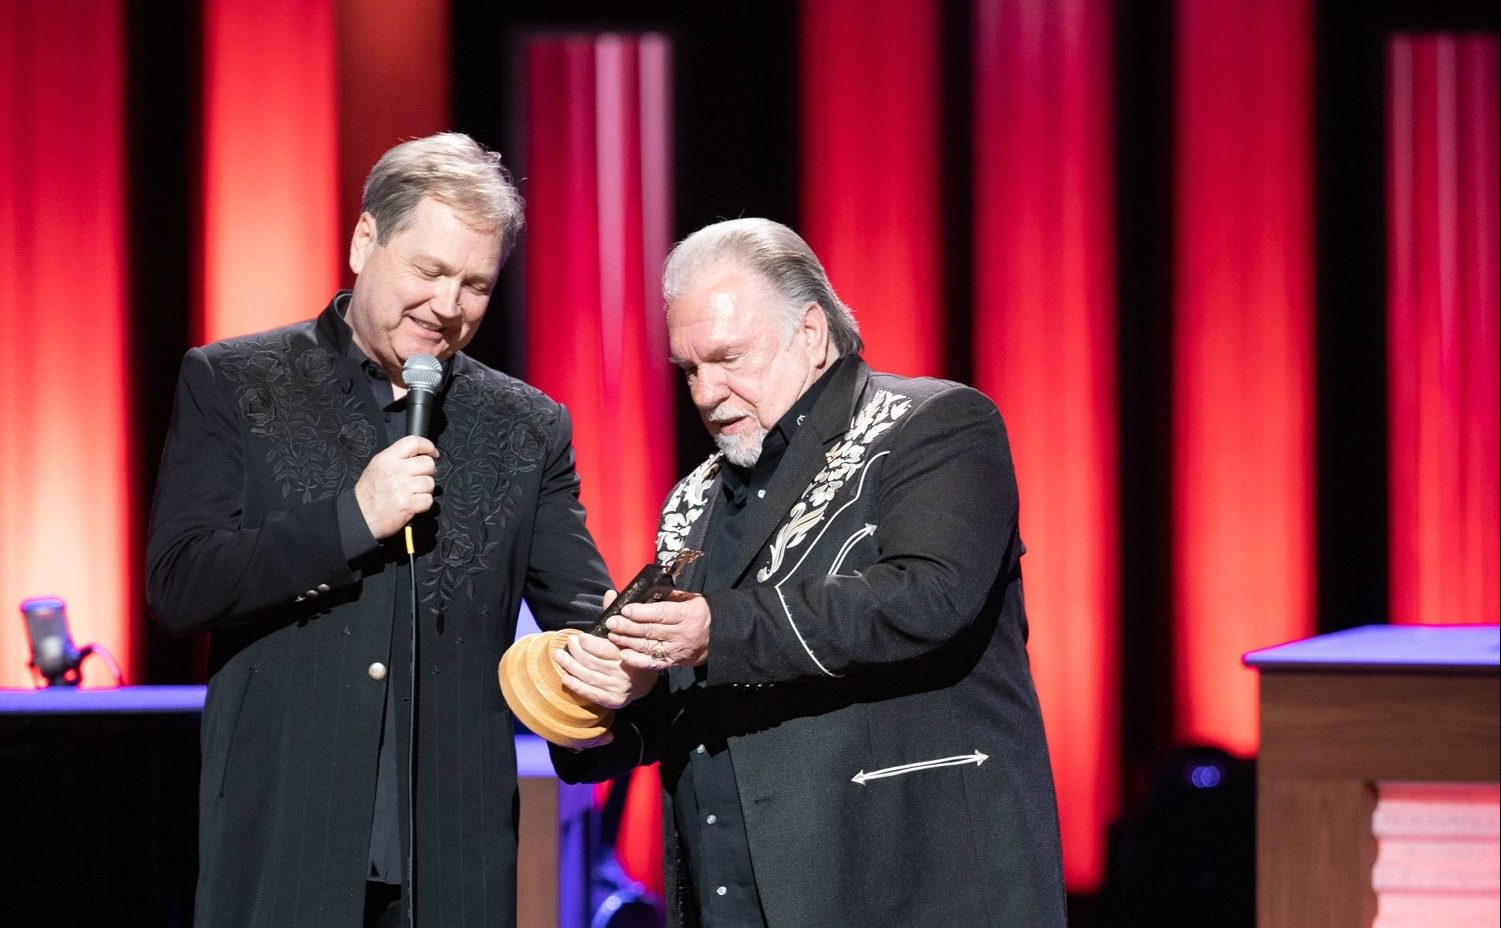 Gene Watson Inducted into OPRY